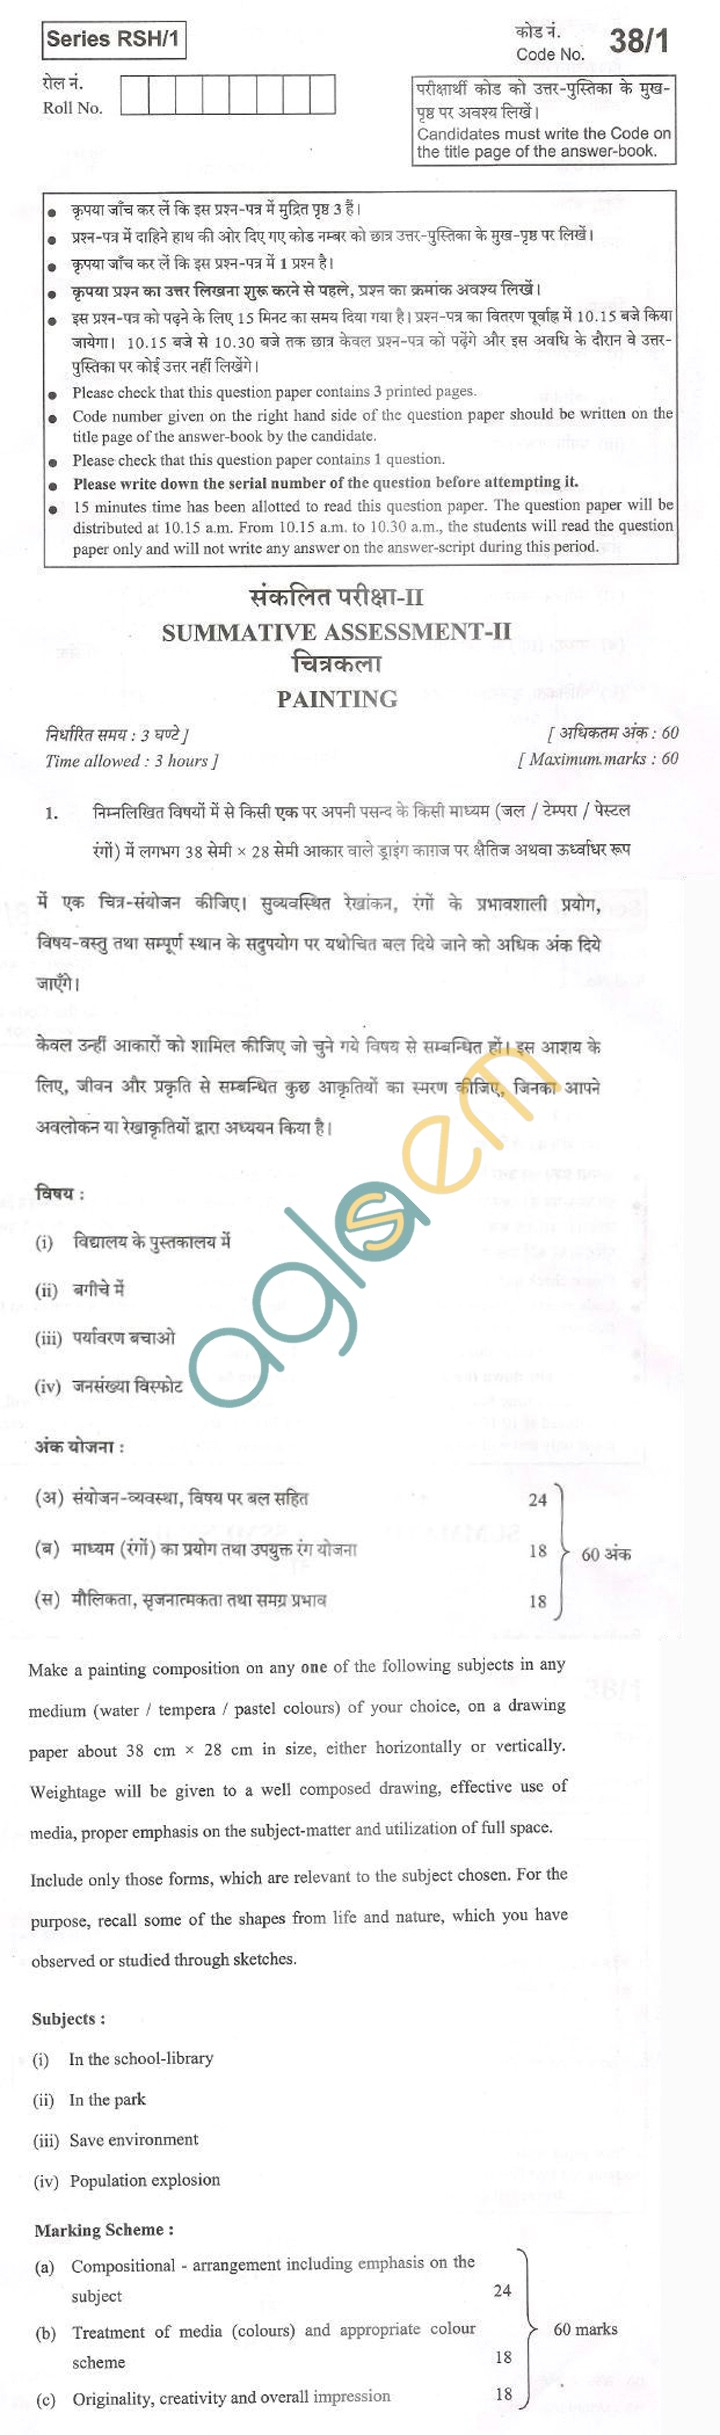 CBSE Board Exam 2013 Class X Question Paper -Painting